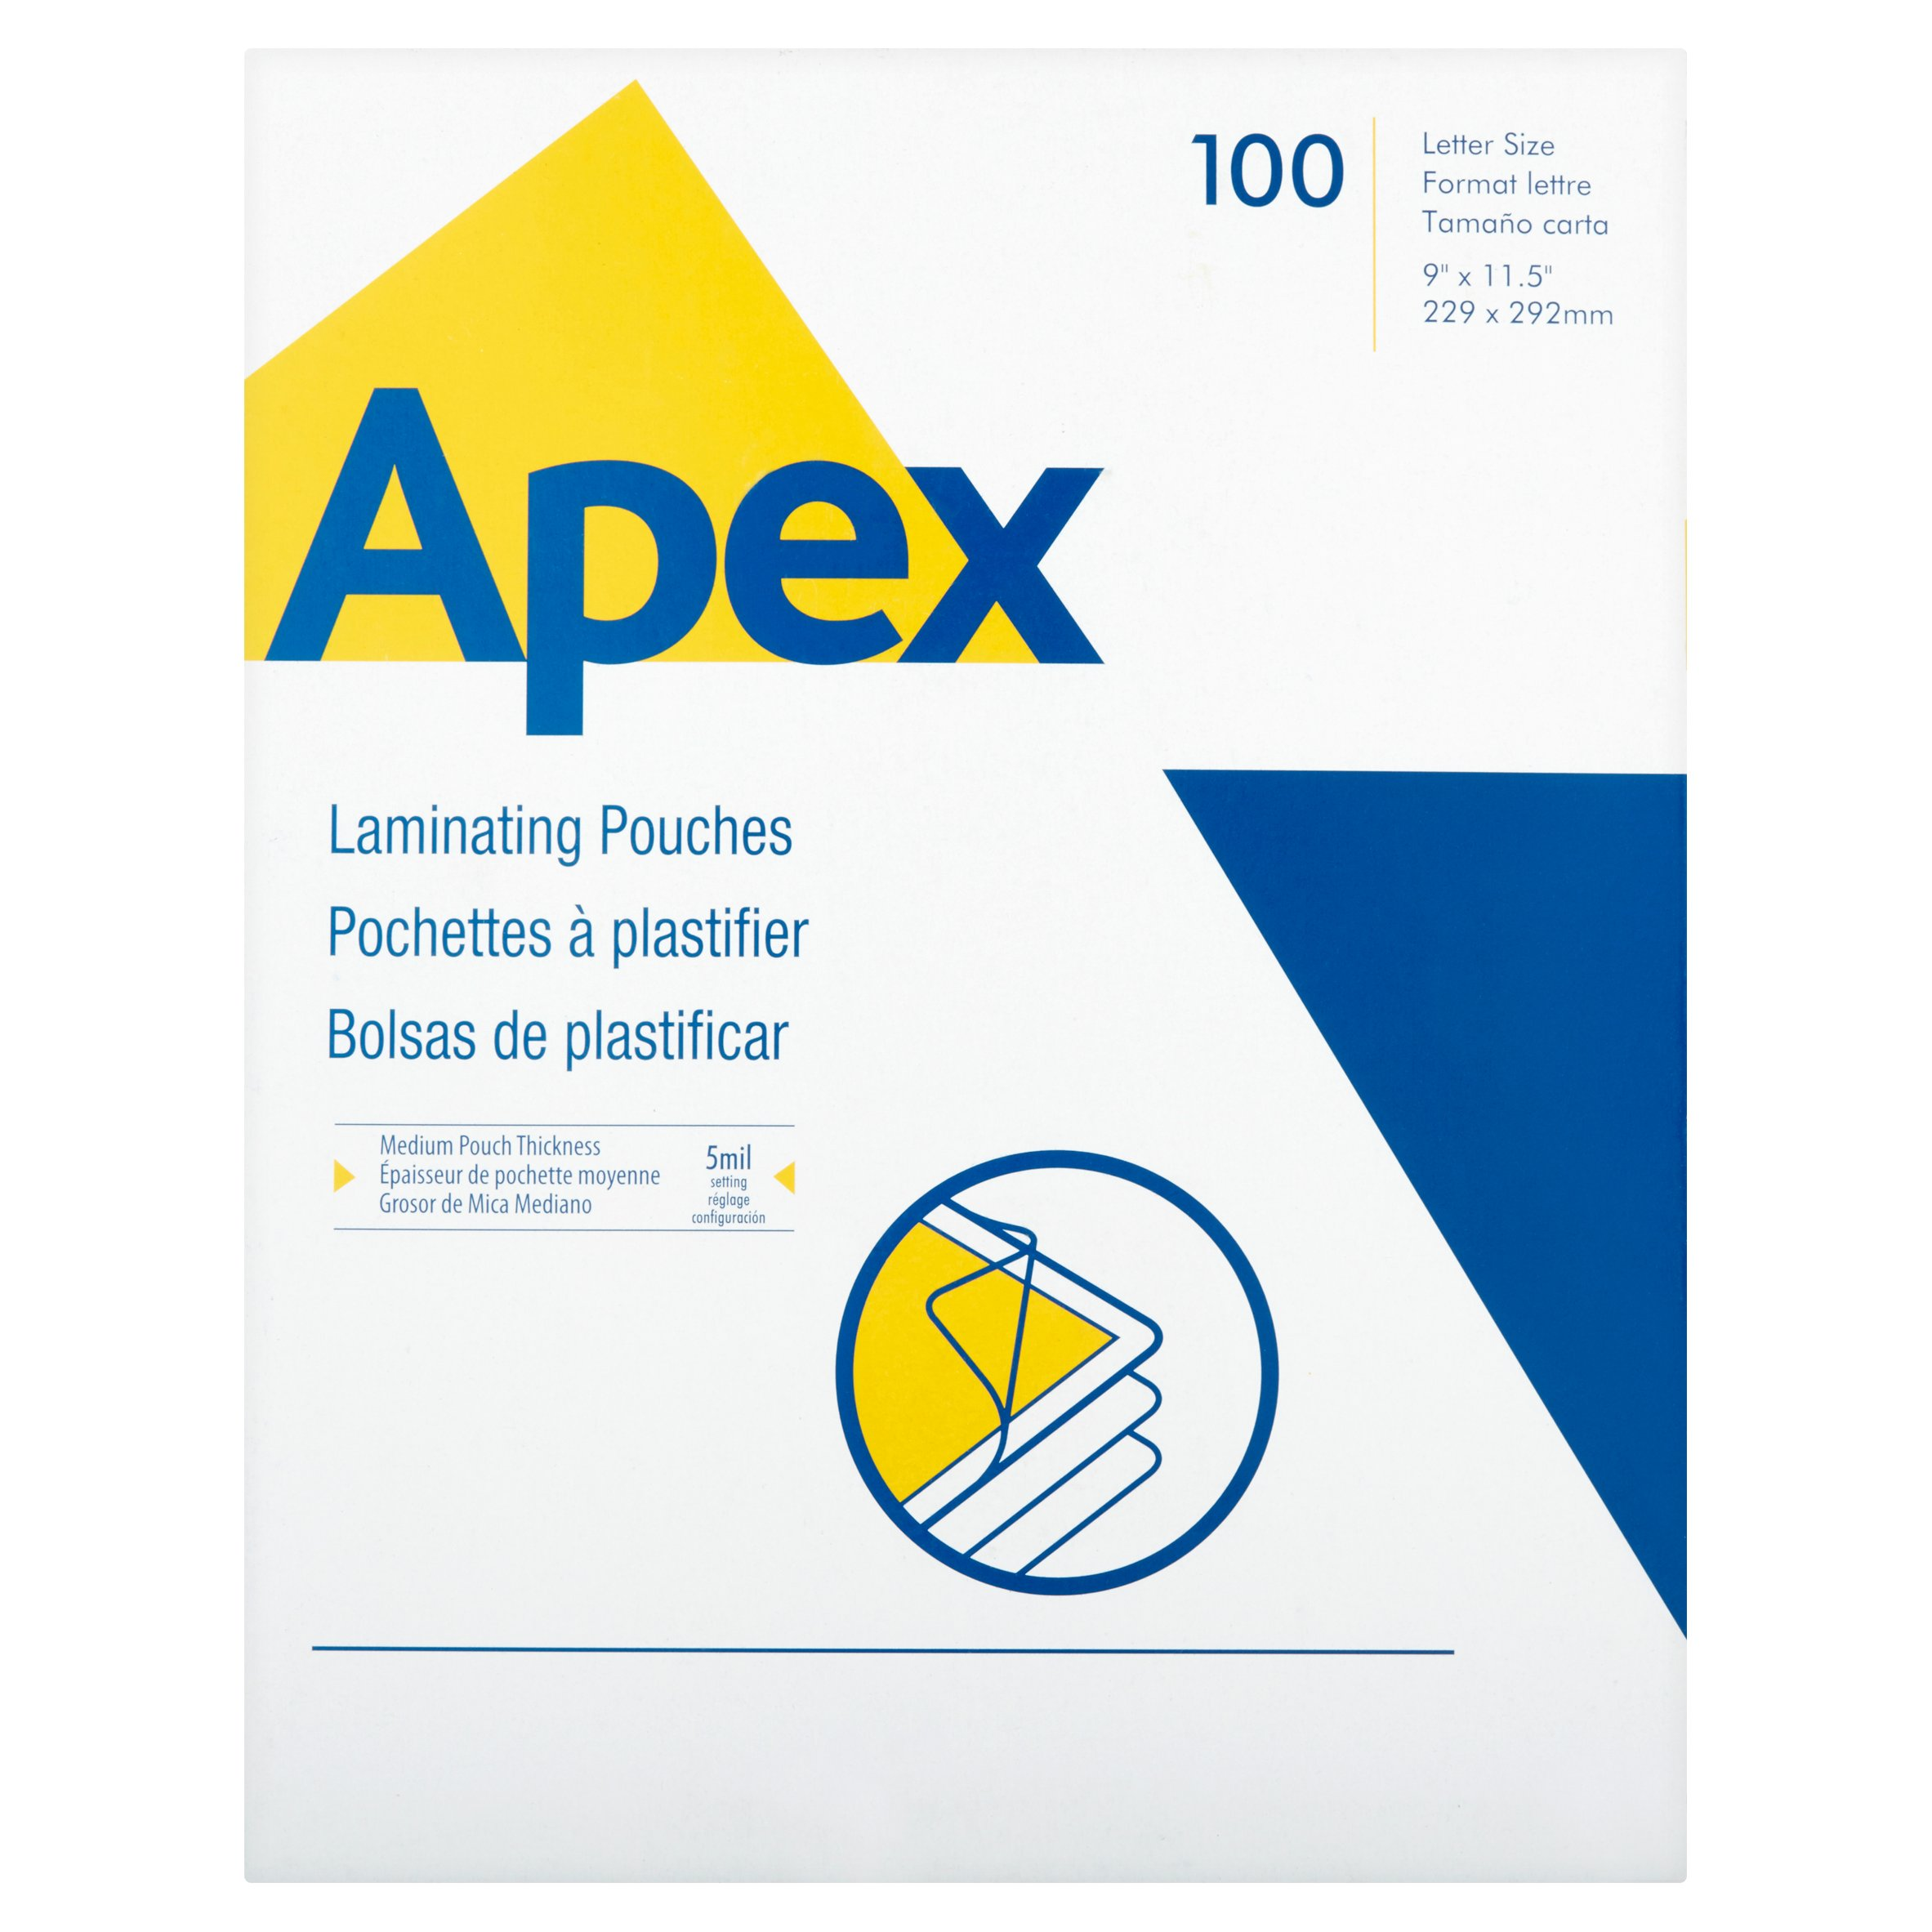 Apex Medium Pouch Thickness 100 Laminating Pouches